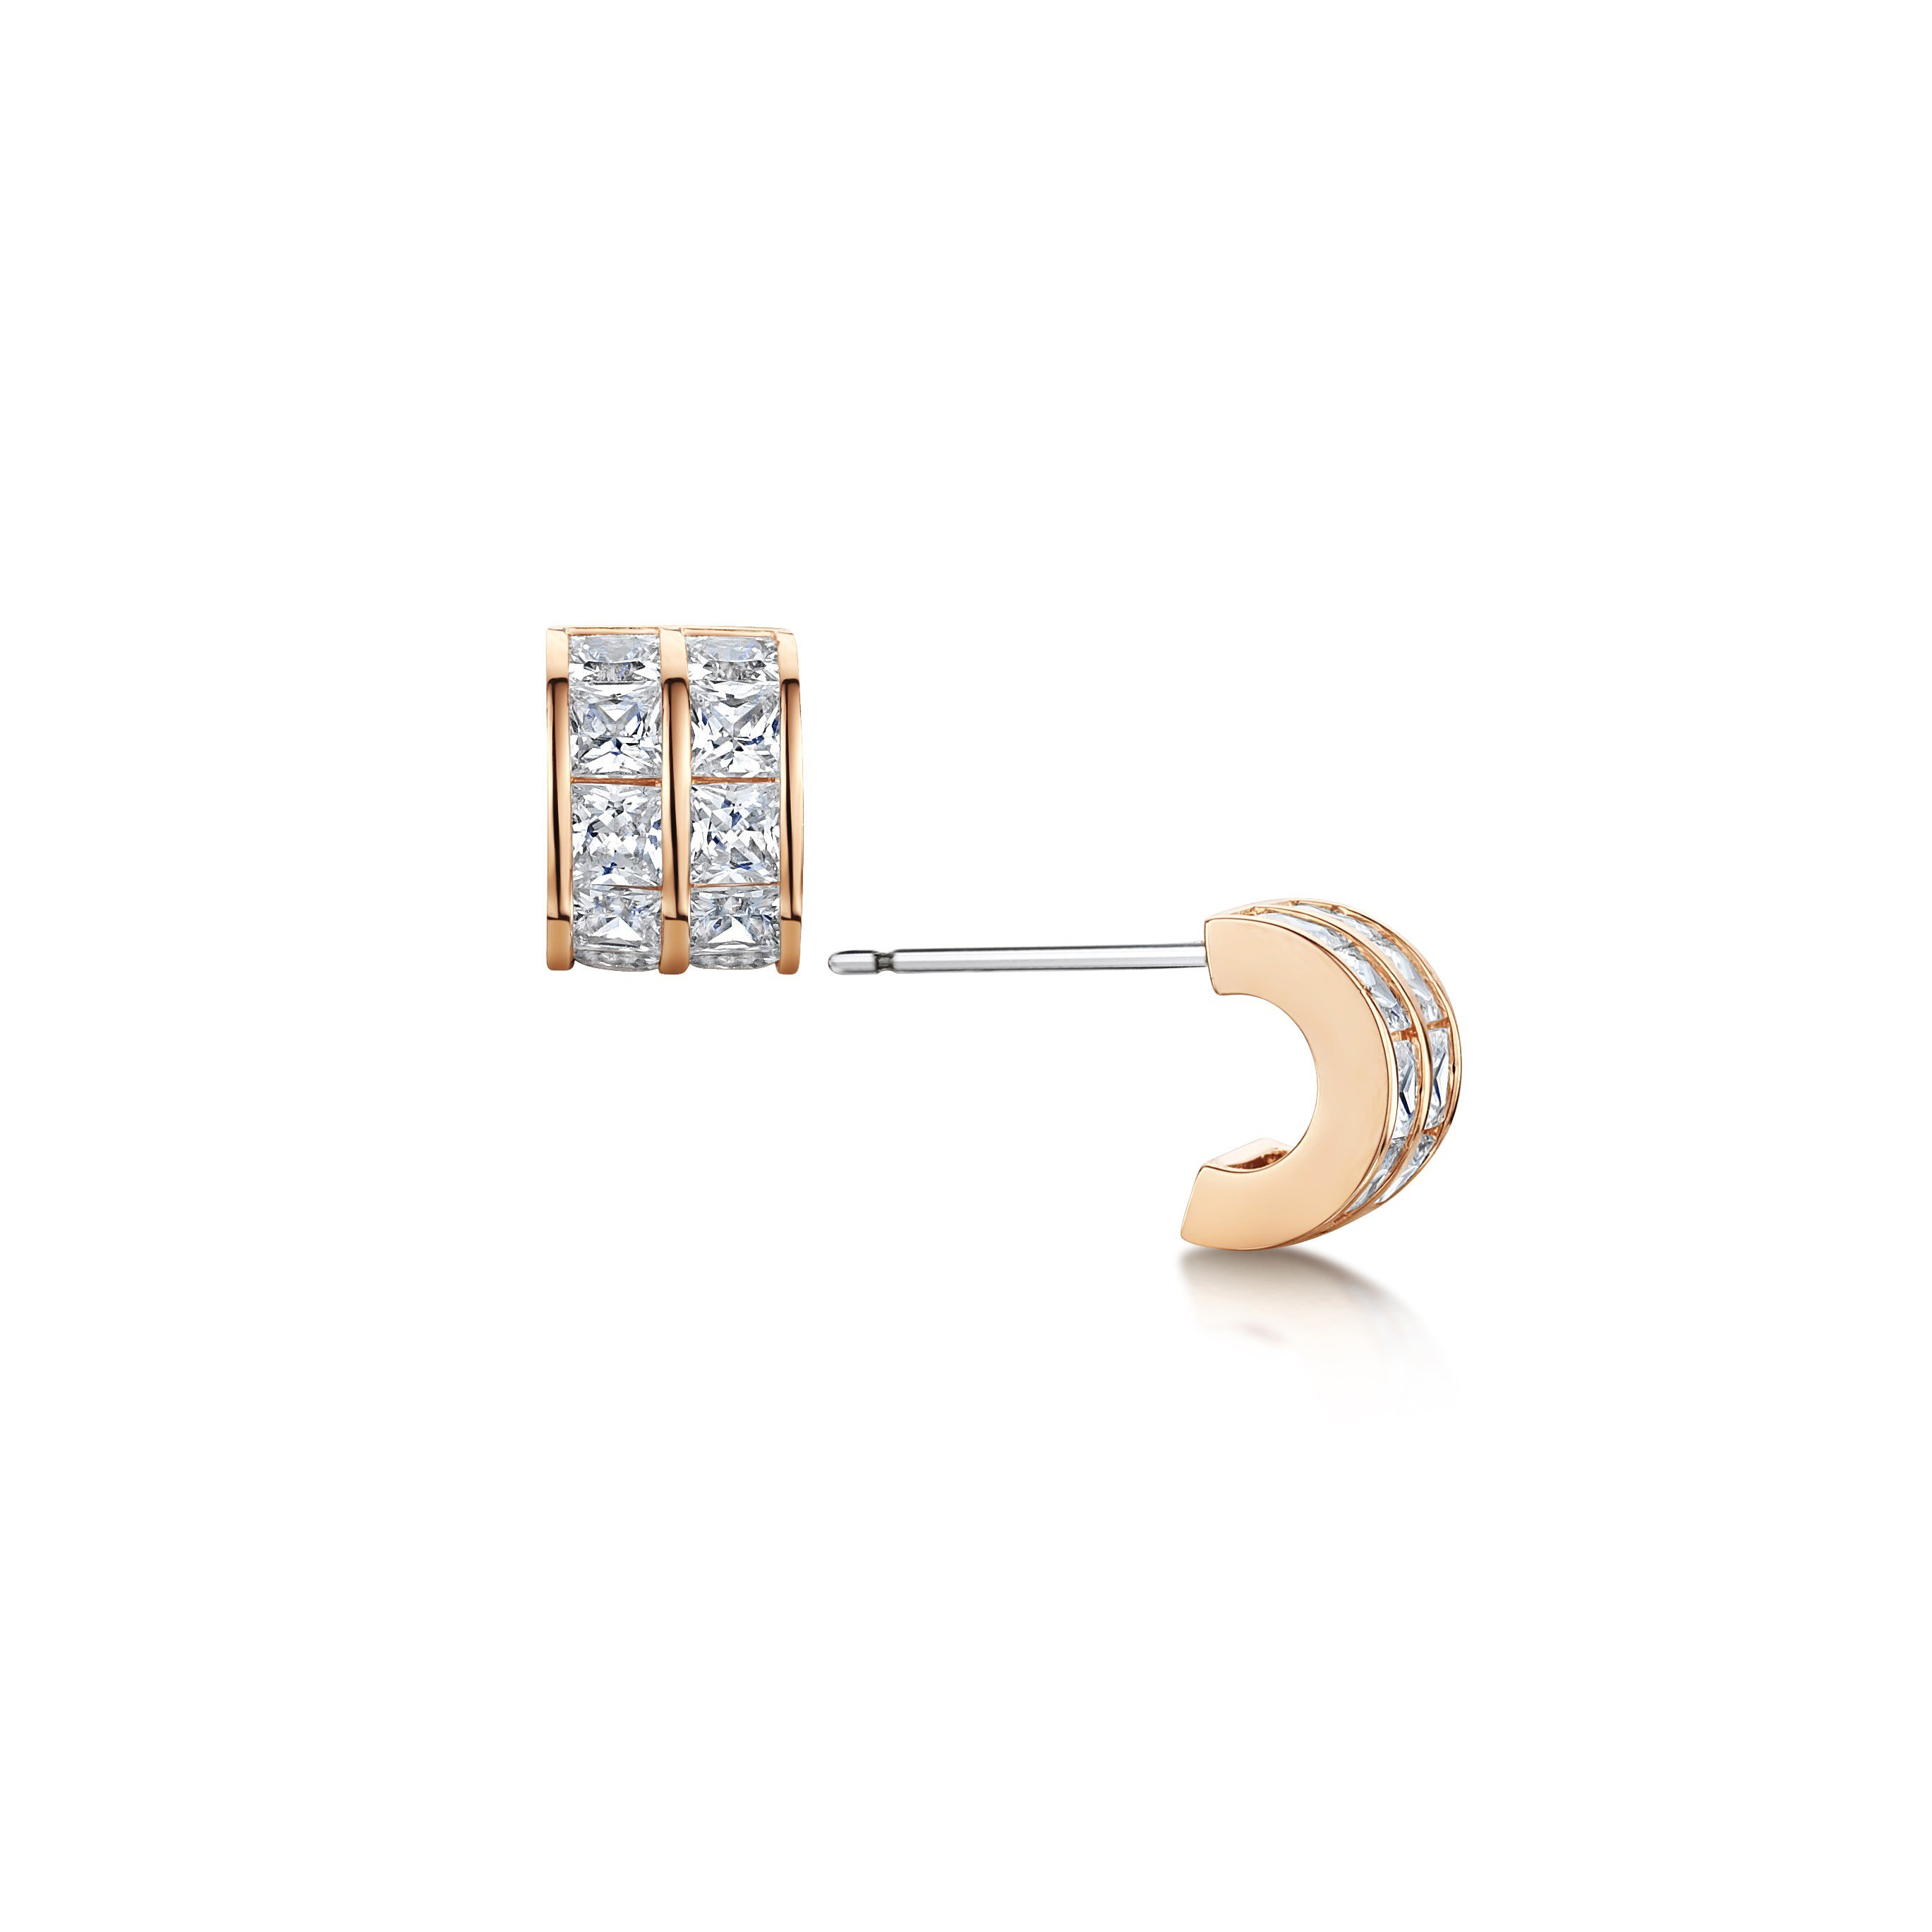 Ice Cube Hoop Earrings – Rose Gold Regarding Newest Sparkling Ice Cube Rings (View 13 of 25)